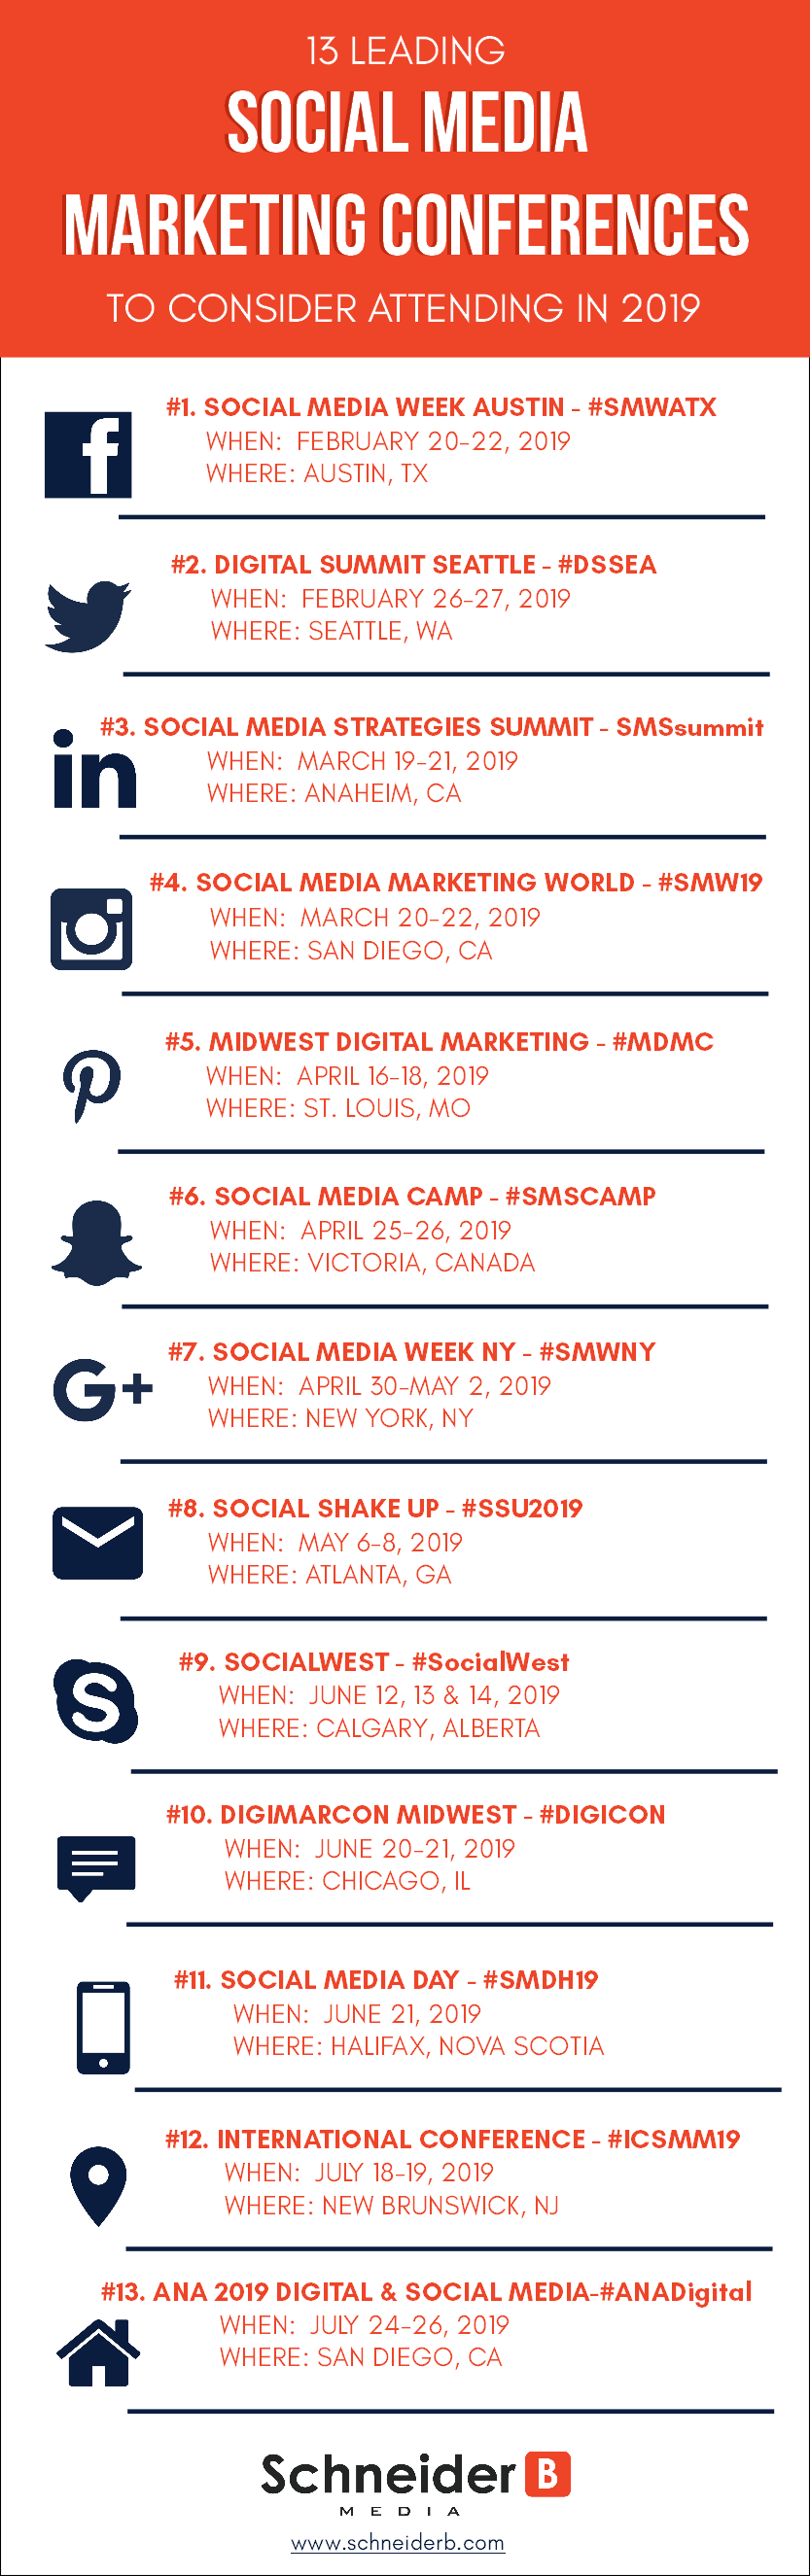 2019 Social Media Marketing Conferences INFOGRAPHIC